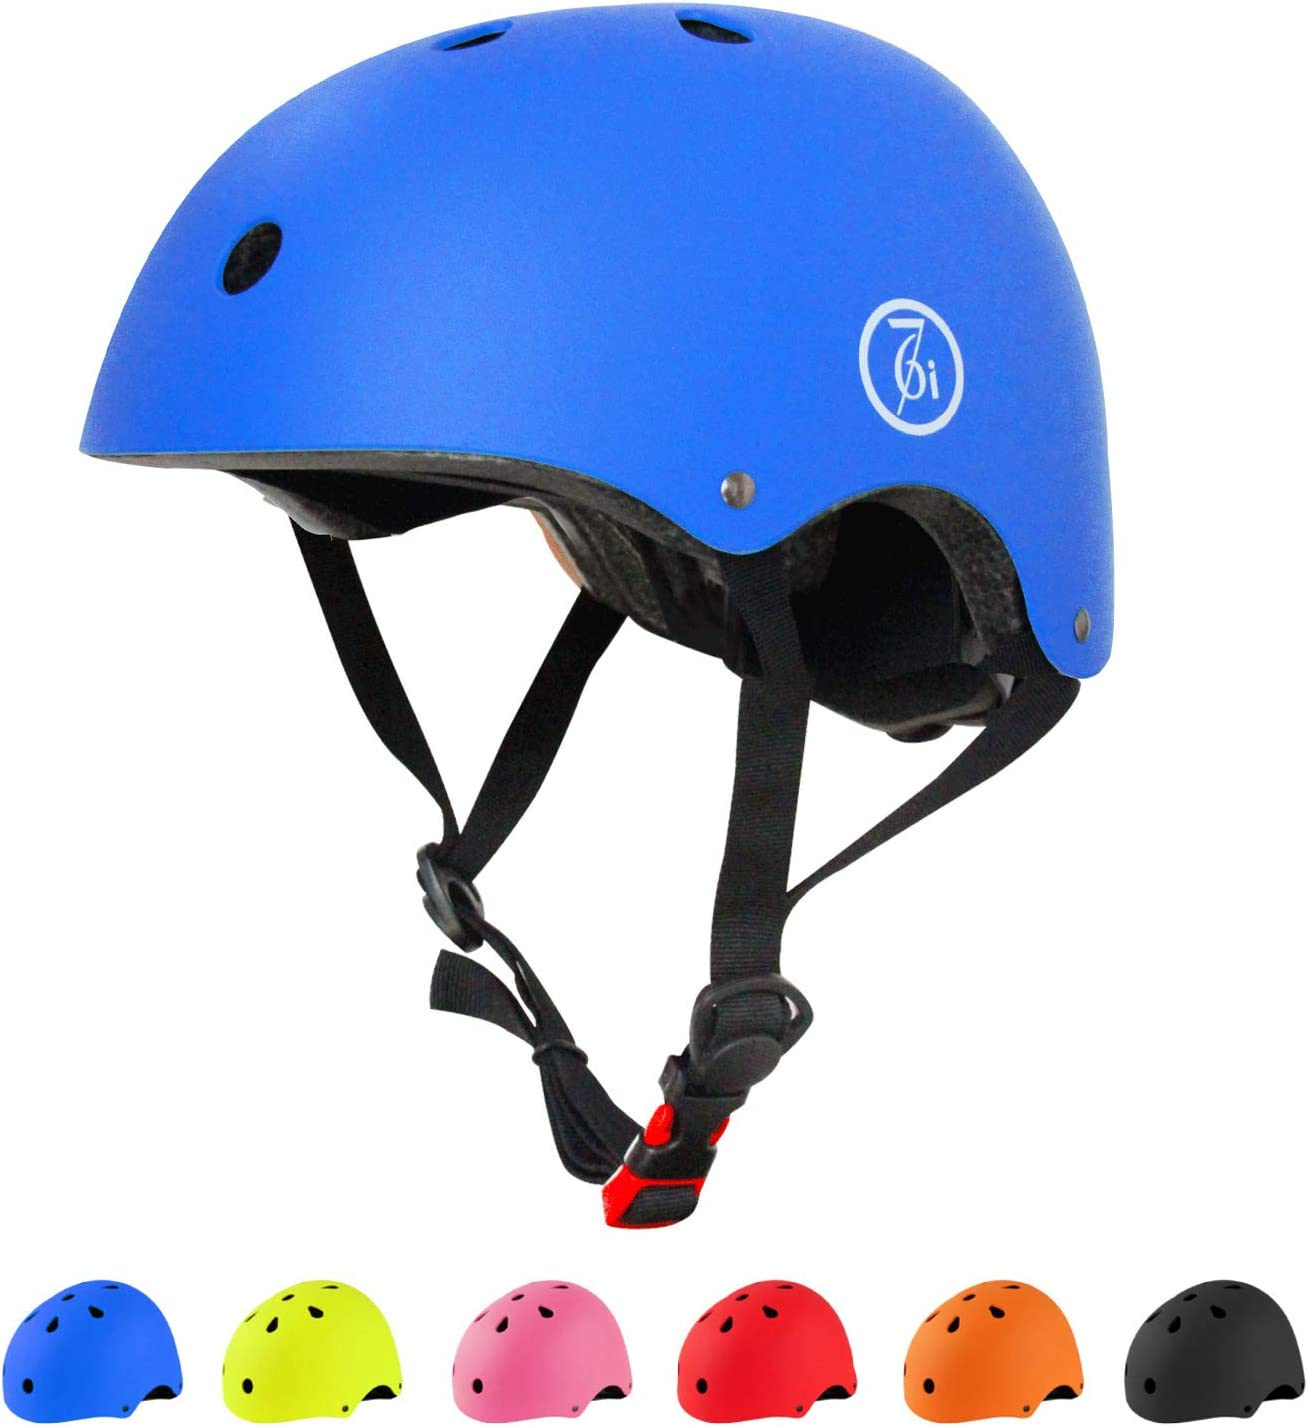 67i Skateboard Helmet Adult Bike Helmet CPSC Certified Adjustable and Protection for Skating Helmet Adults Multi-Sports Cycling Skateboarding Scooter Roller Skate Inline Skating Rollerblading